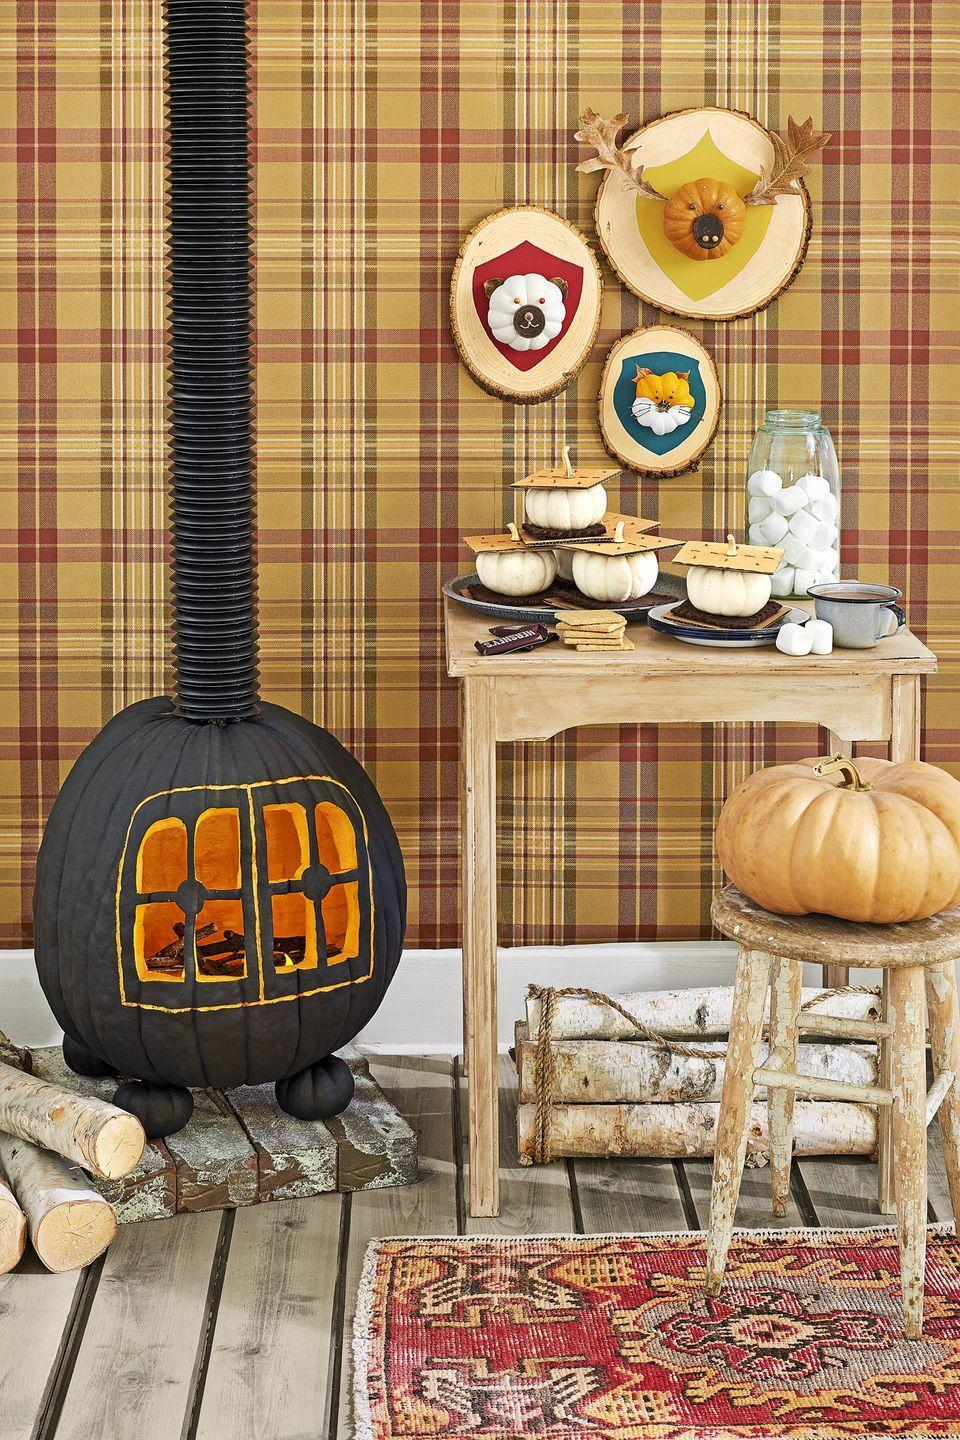 "<p>No cabin evening is complete without a roaring fire. To assemble yours, cut a hole in the bottom of an extra-large pumpkin, and scoop out pulp and seeds. <a href=""https://www.countryliving.com/diy-crafts/how-to/a3048/halloween-templates-1009/"" rel=""nofollow noopener"" target=""_blank"" data-ylk=""slk:Trace the door template"" class=""link rapid-noclick-resp"">Trace the door template</a> on the pumpkin, scaling up or down as necessary. Chisel out the outline, and use a knife to cut out the windowpanes. Paint the pumpkin (excluding chiseled section) black. Fill with sticks longer than the hole, and top with battery-operated tea lights. Remove the stems from four small pumpkins, and paint pumpkins black; place stove pumpkin on top. Rest a piece of solid, <a href=""https://www.amazon.com/dp/B000OHANEM/ref=asc_df_B000OHANEM5142080?tag=syn-yahoo-20&ascsubtag=%5Bartid%7C10050.g.1350%5Bsrc%7Cyahoo-us"" rel=""nofollow noopener"" target=""_blank"" data-ylk=""slk:expandable drain pipe"" class=""link rapid-noclick-resp"">expandable drain pipe</a> over the stem; attach pipe to the wall or ceiling to help it stay upright. </p><p><a class=""link rapid-noclick-resp"" href=""https://www.amazon.com/dp/B01MQ1Q3R1/ref=asc_df_B01MQ1Q3R15142080?tag=syn-yahoo-20&ascsubtag=%5Bartid%7C10050.g.1350%5Bsrc%7Cyahoo-us"" rel=""nofollow noopener"" target=""_blank"" data-ylk=""slk:SHOP TEA LIGHTS"">SHOP TEA LIGHTS</a></p>"